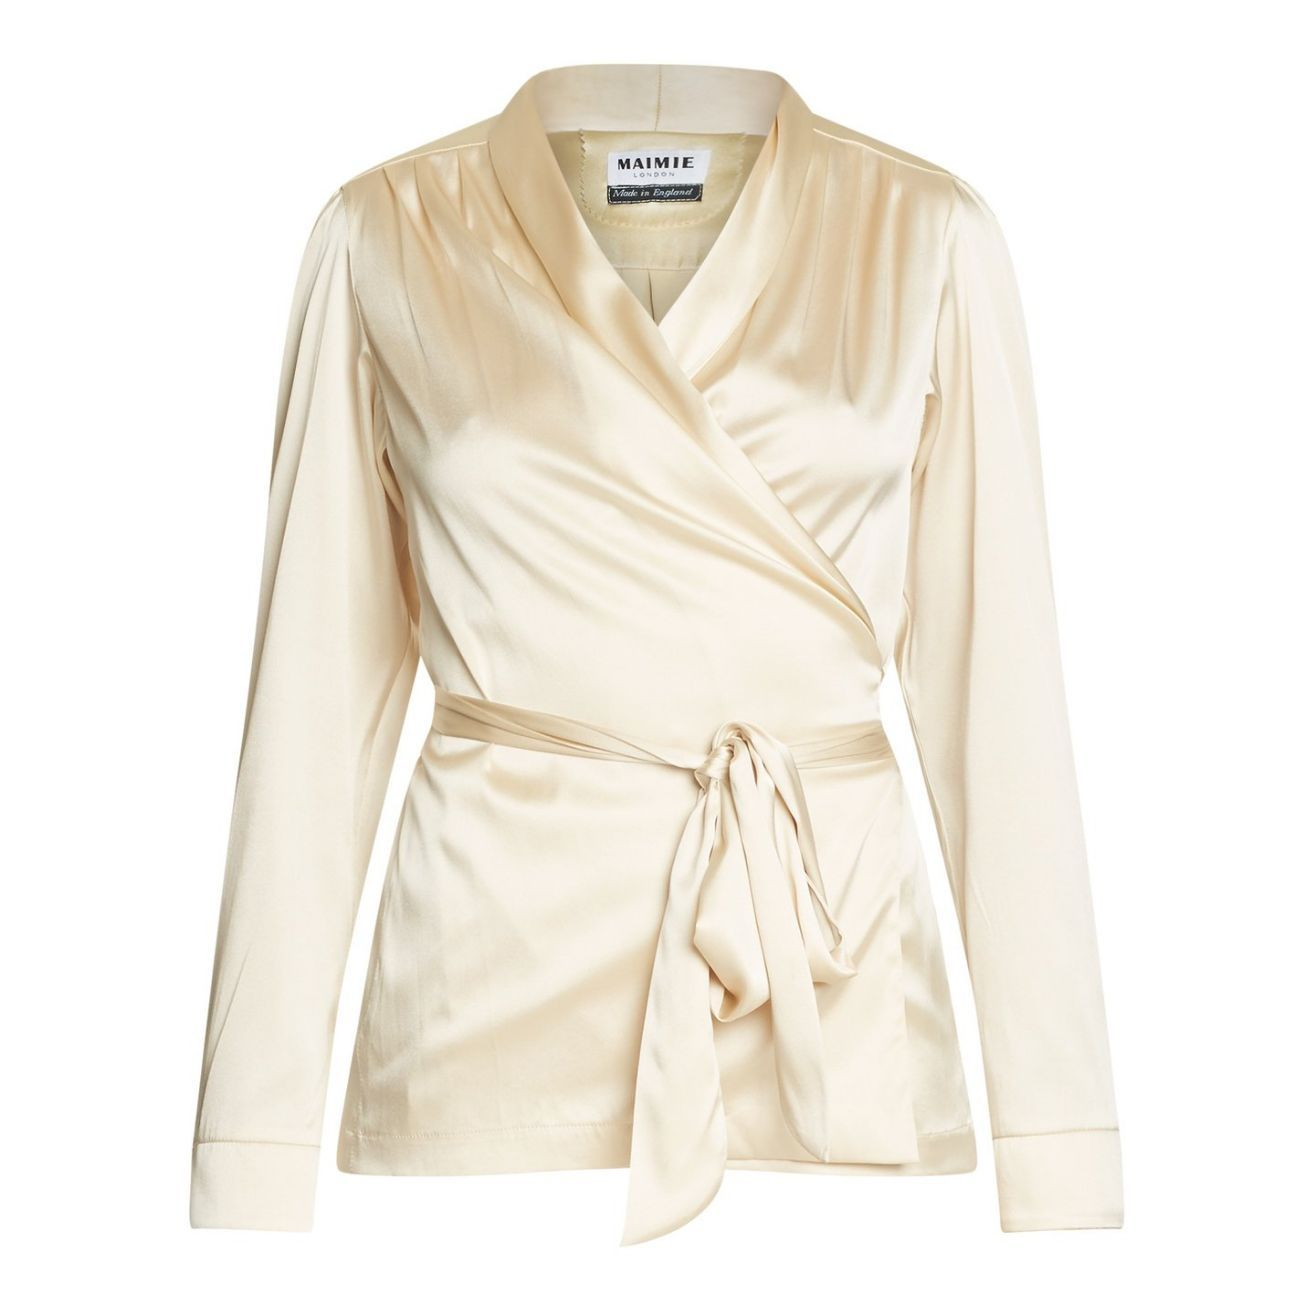 Silk Jacket in an Oyster Pearl, Natural x Lab, Reve en Vert, Matches Fashion, Browns Fashion, Mamie